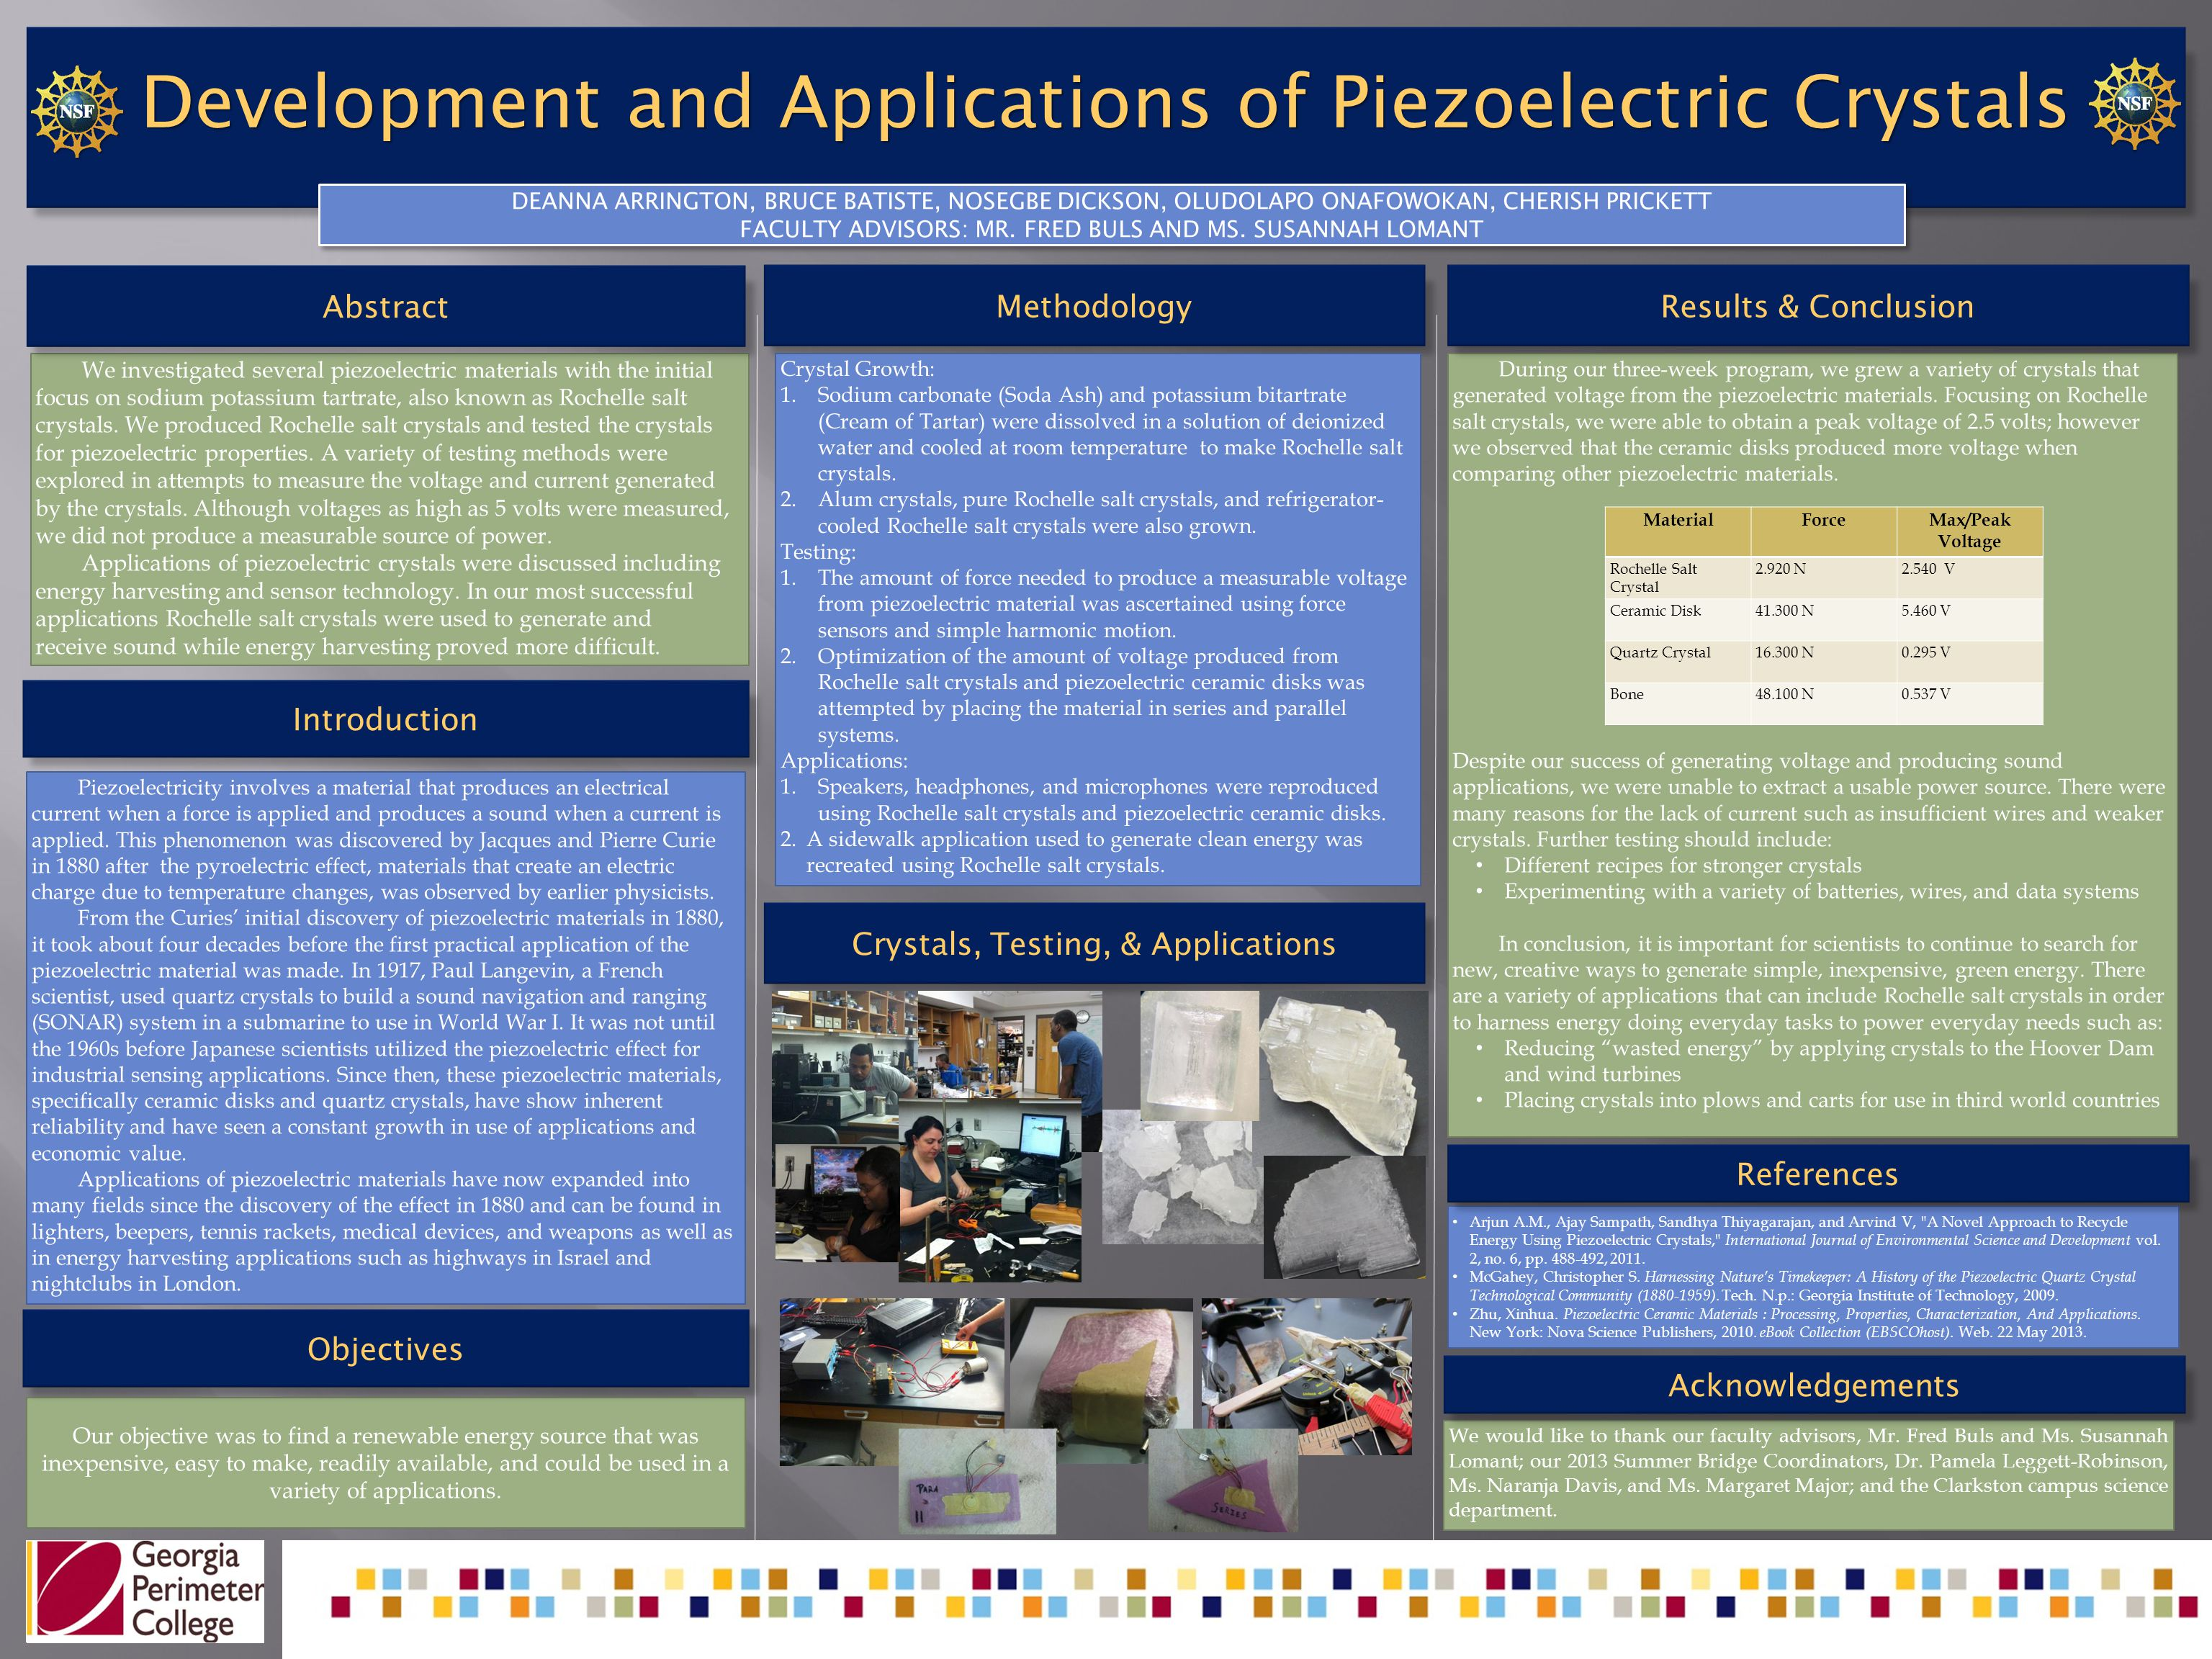 Arjun A.M., Ajay Sampath, Sandhya Thiyagarajan, and Arvind V, A Novel Approach to Recycle Energy Using Piezoelectric Crystals, International Journal of Environmental Science and Development vol.